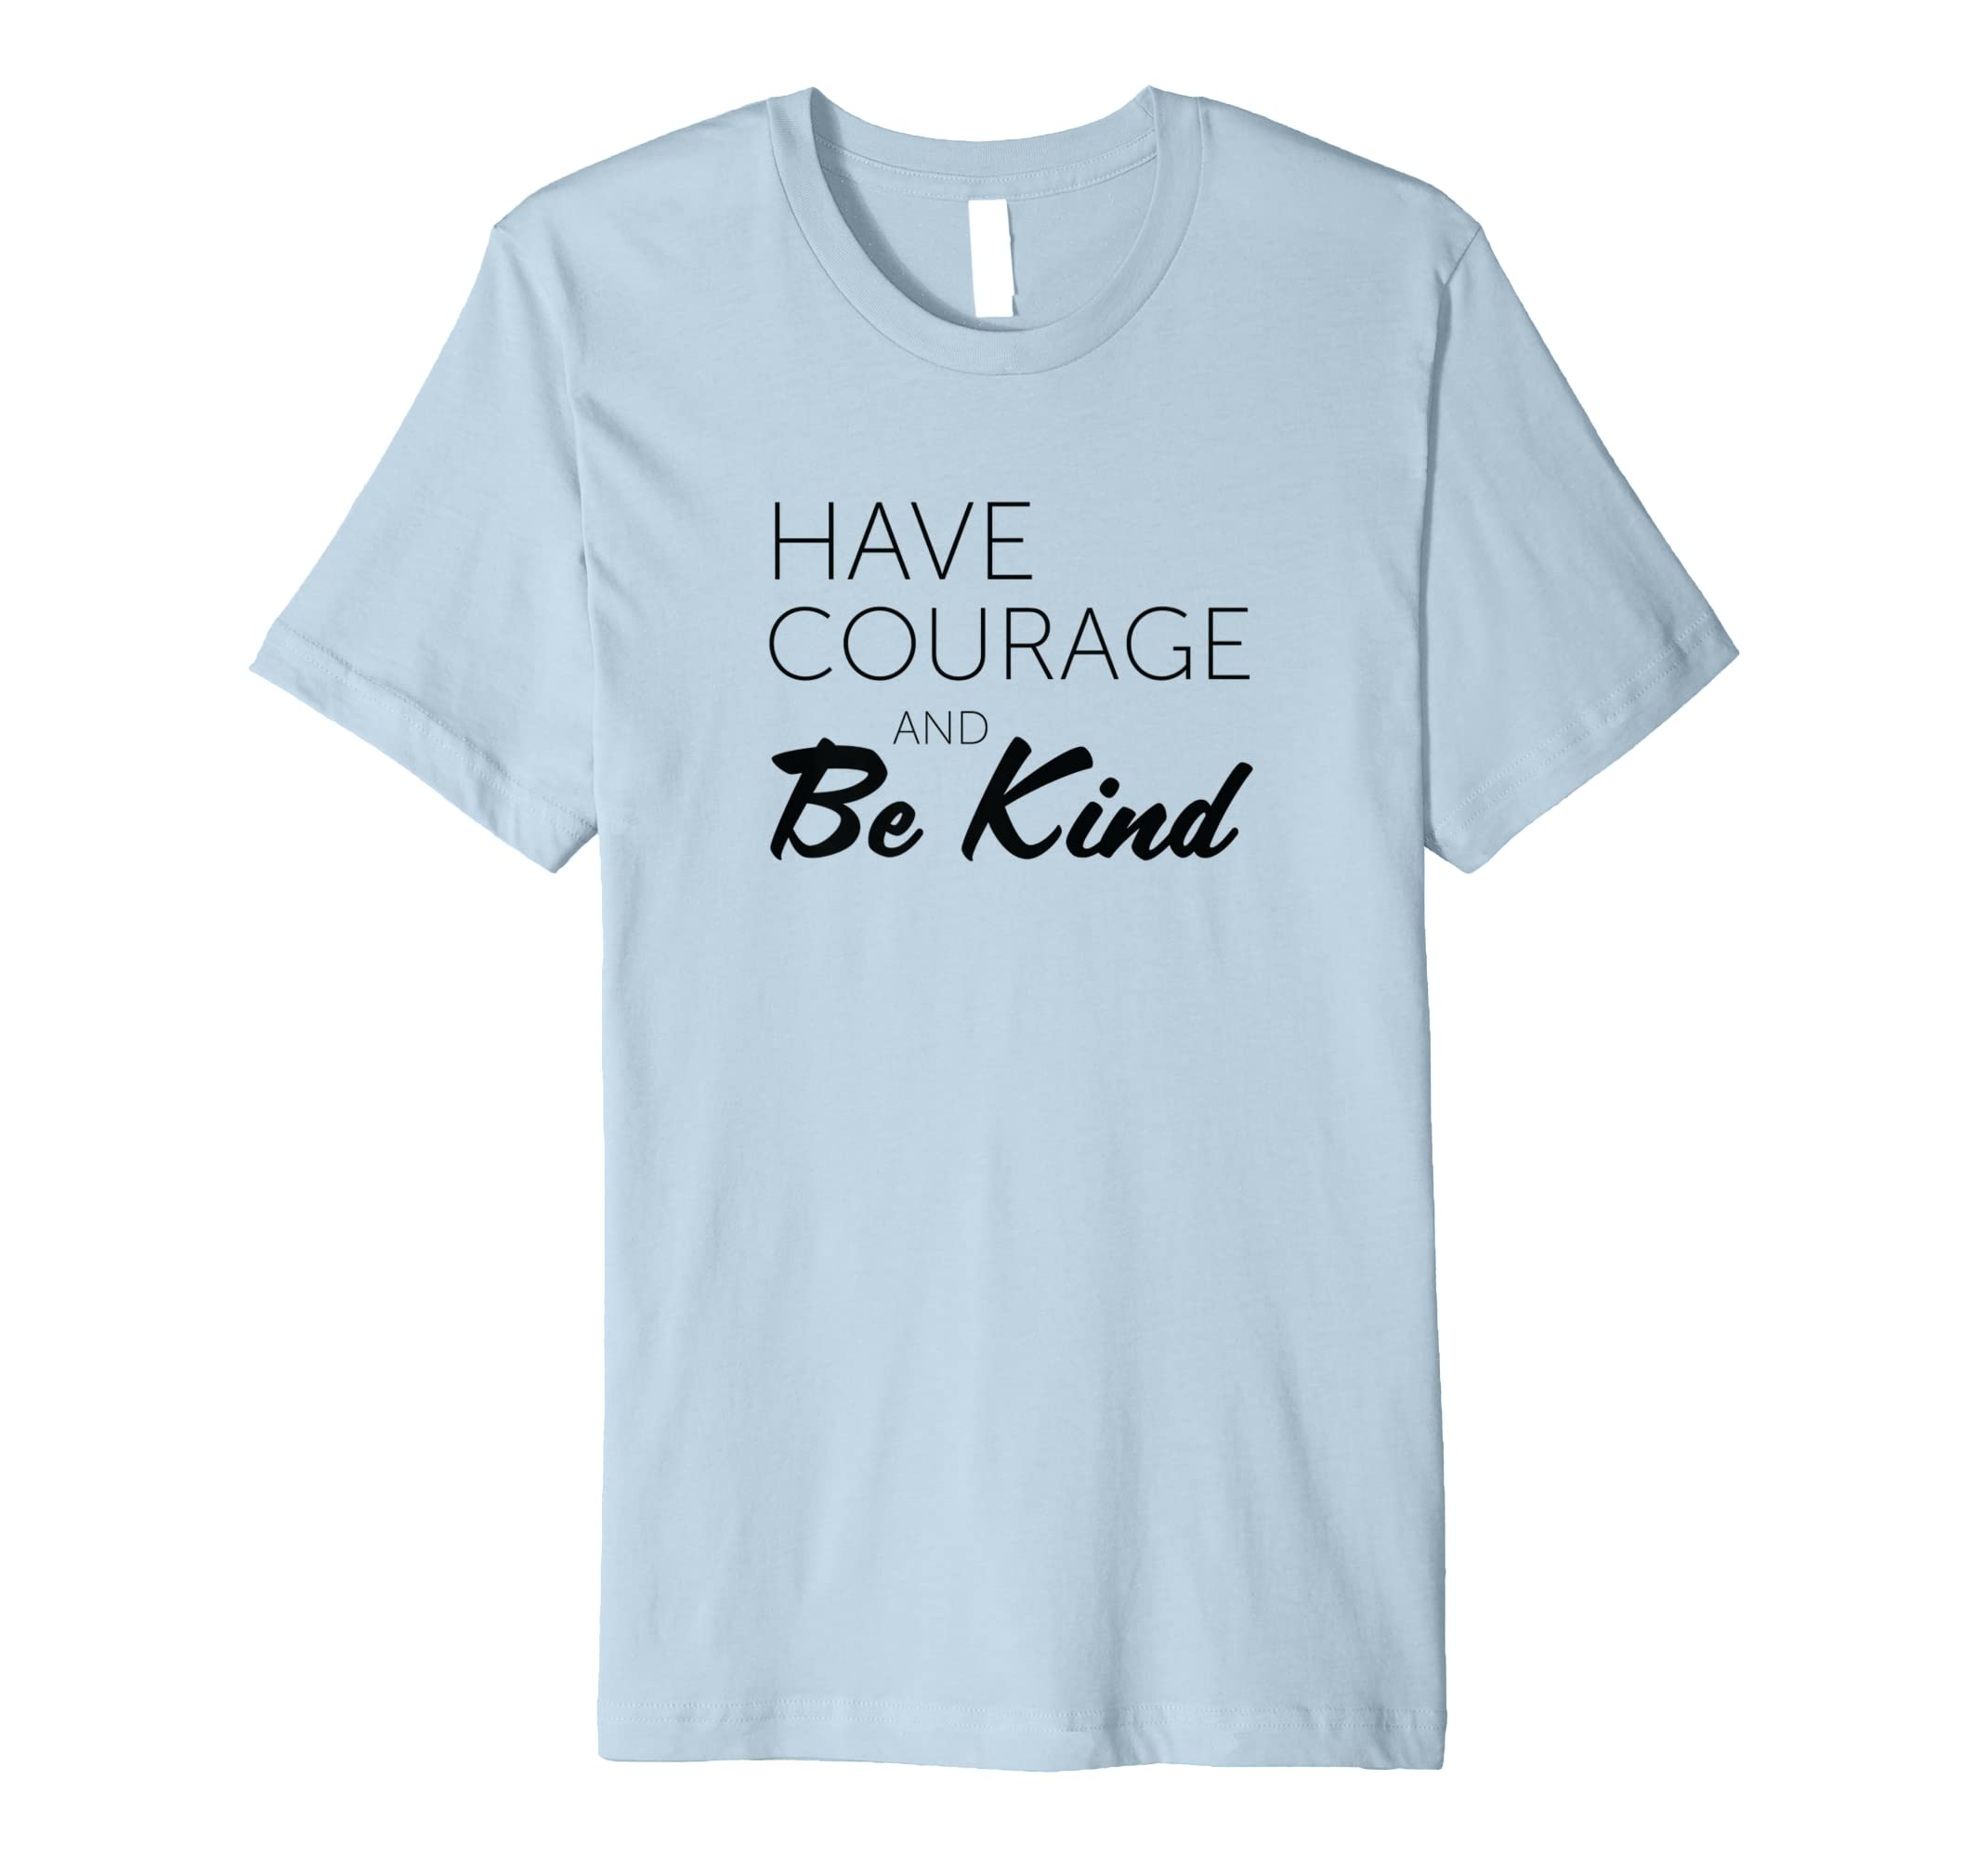 Have Courage and Be Kind - Kindness Shirt - Teacher Shirt- TPT